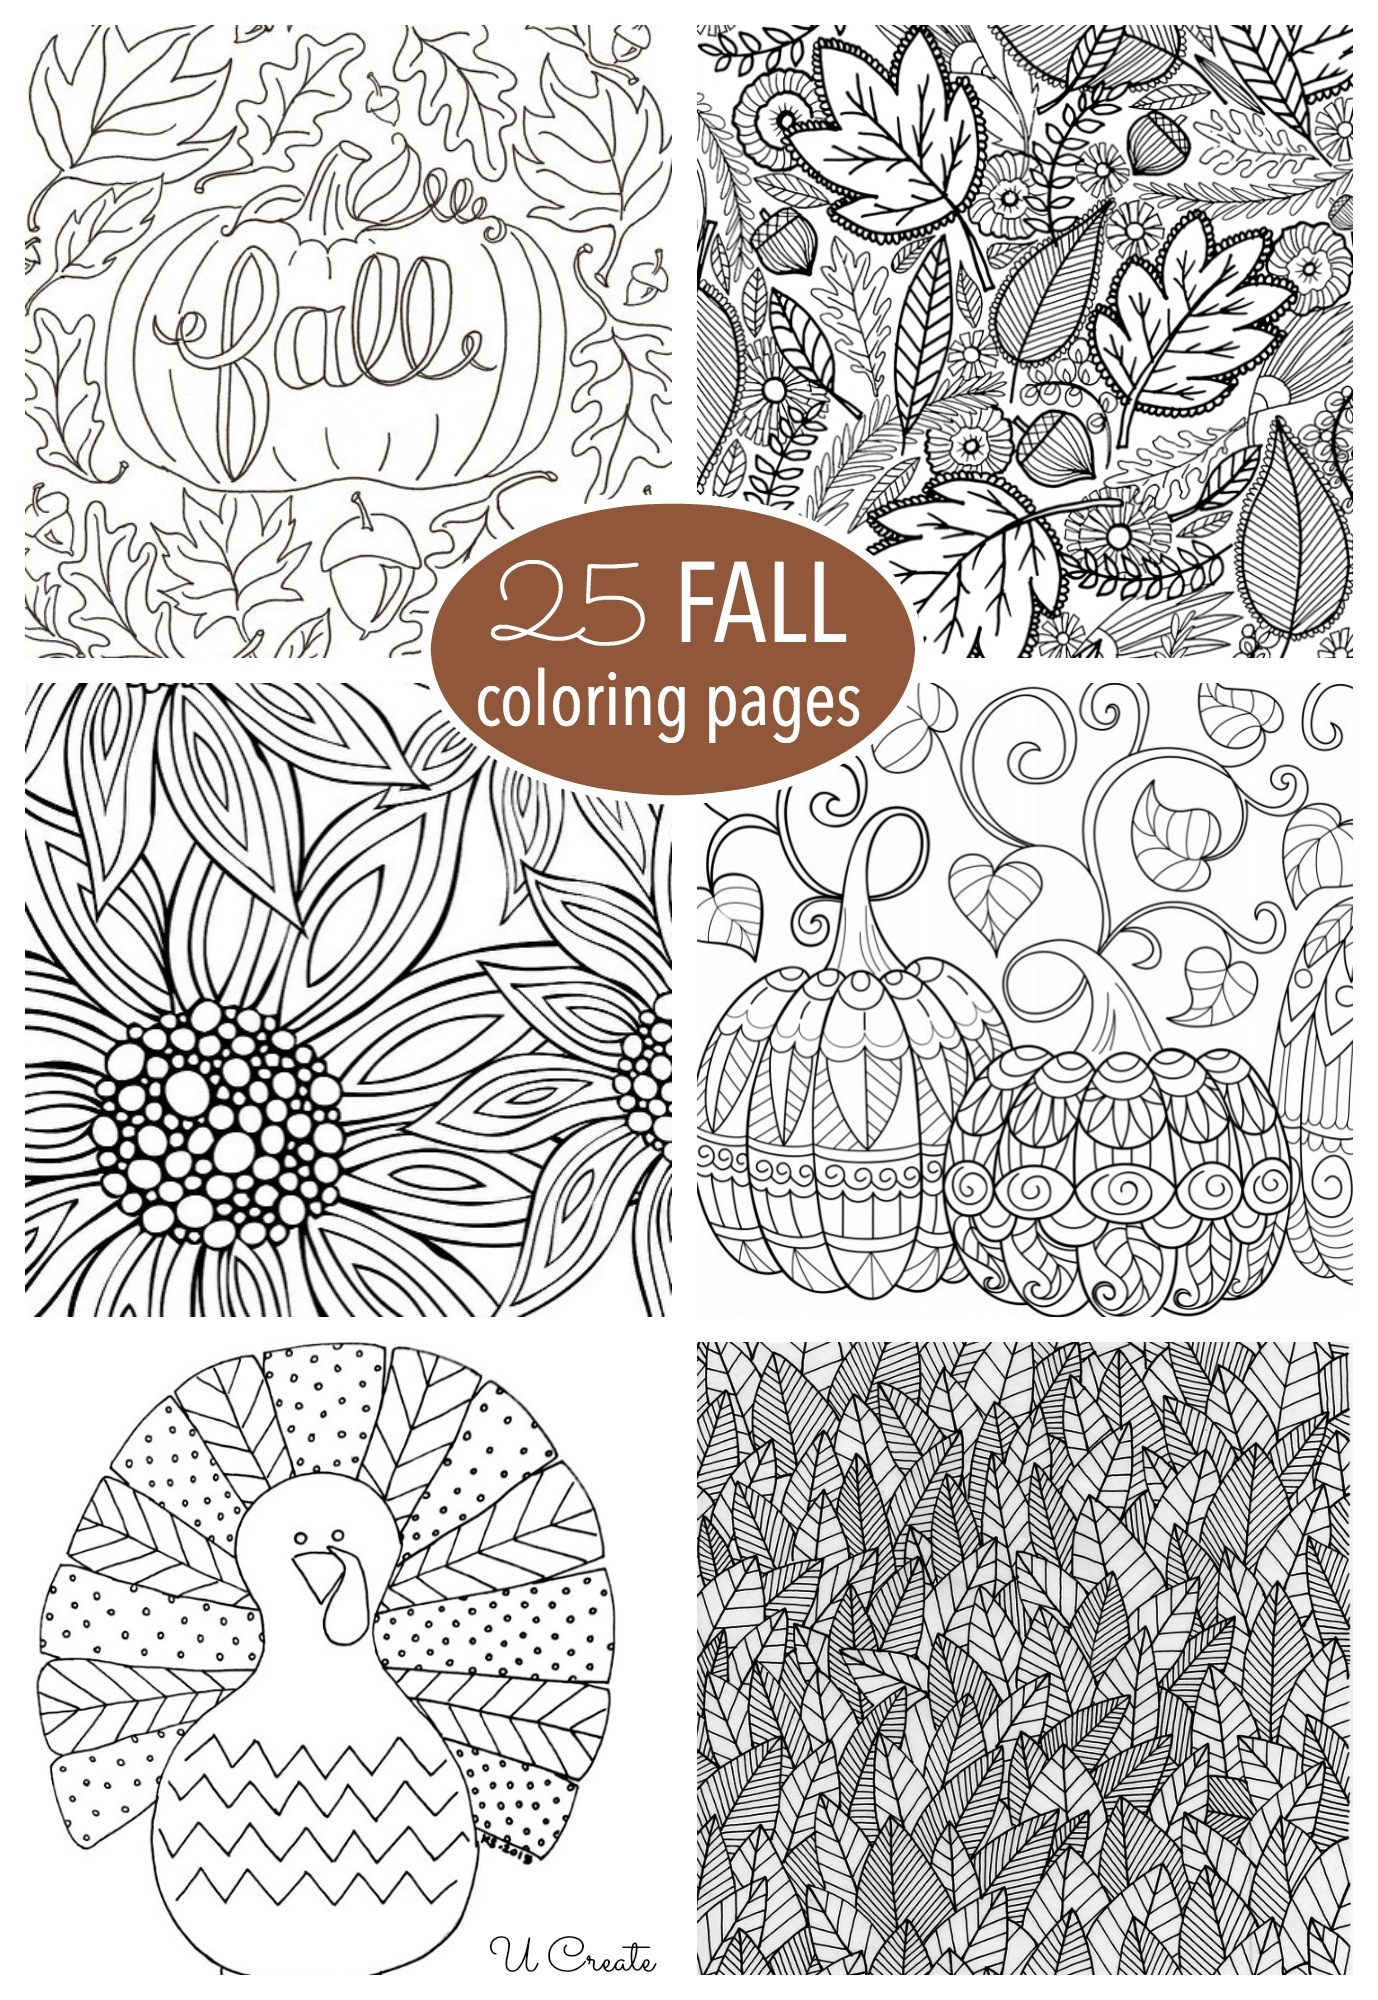 Free Fall Adult Coloring Pages - U Create - Fall Printable Coloring Pages Free